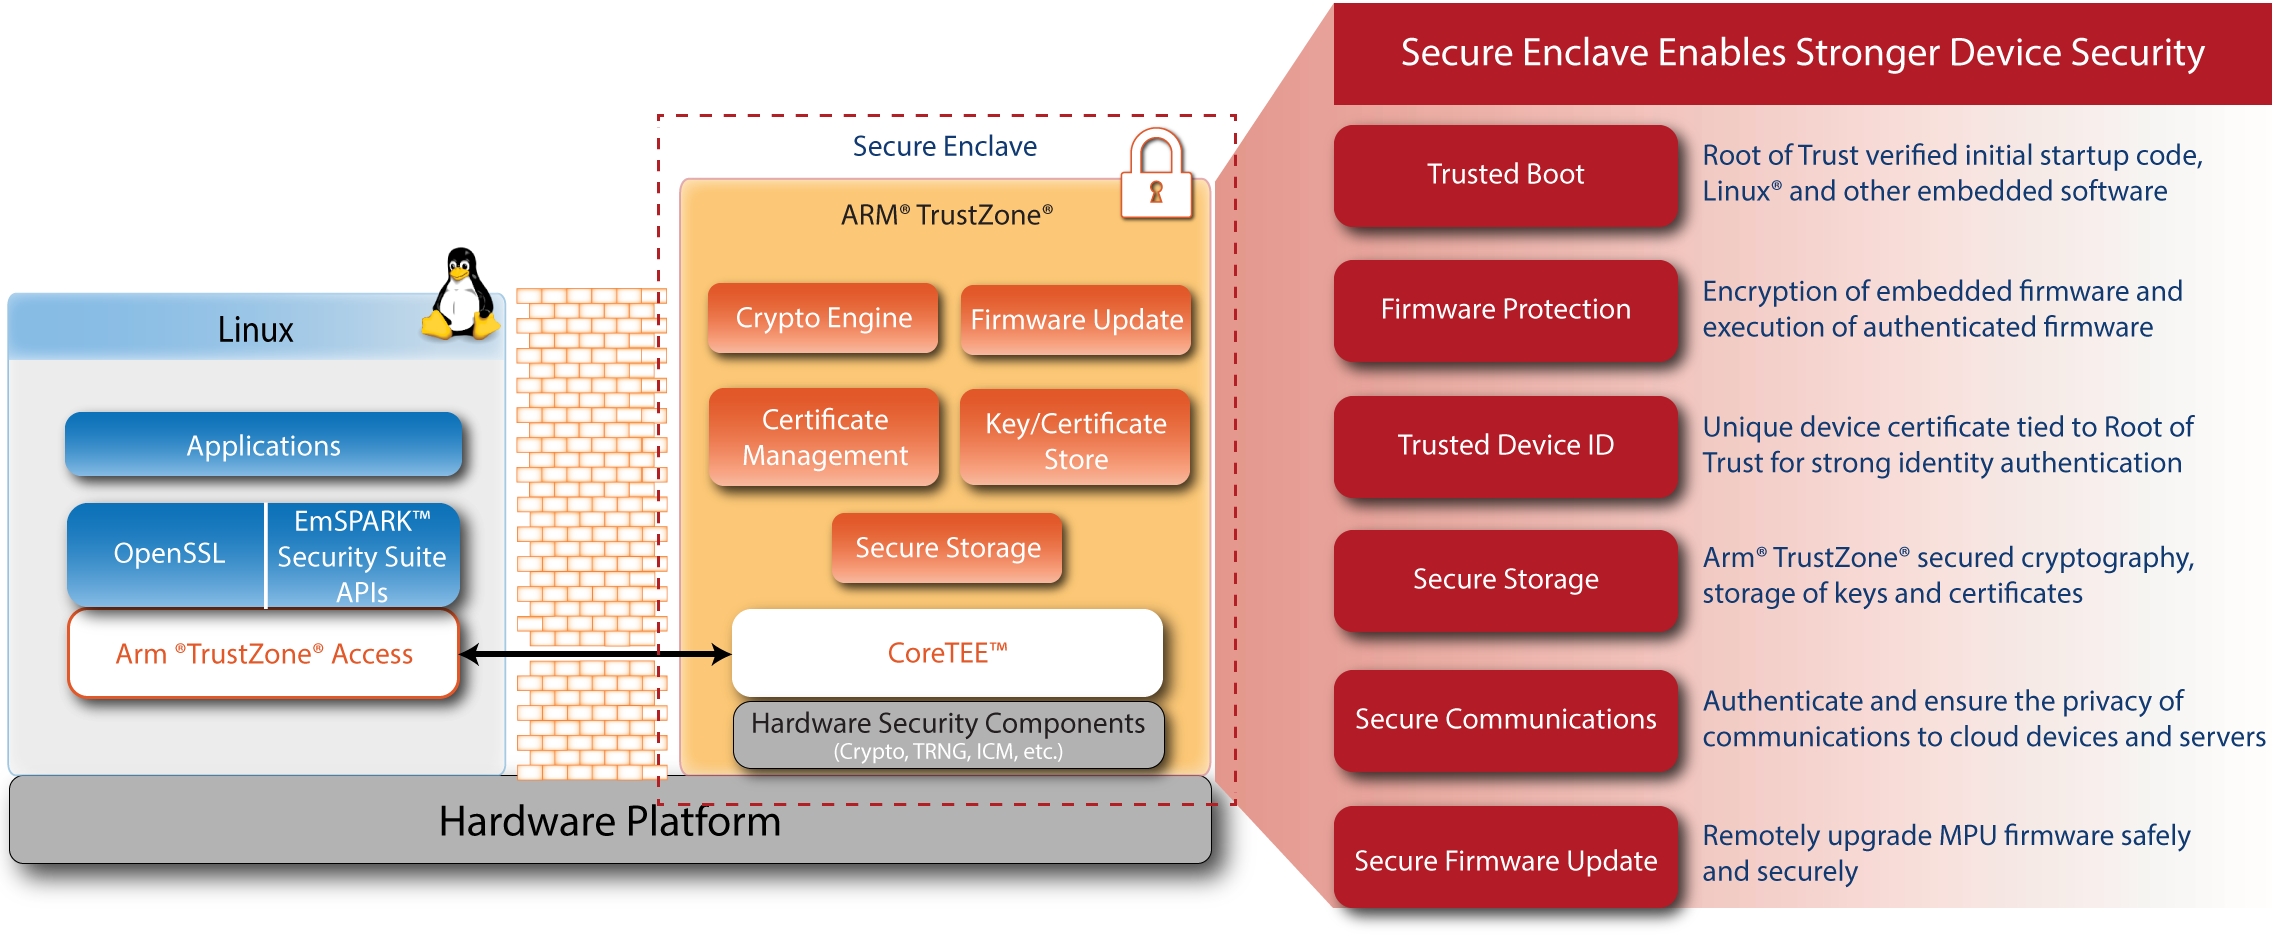 IoT Security Suite Secure Enclave Description Diagram